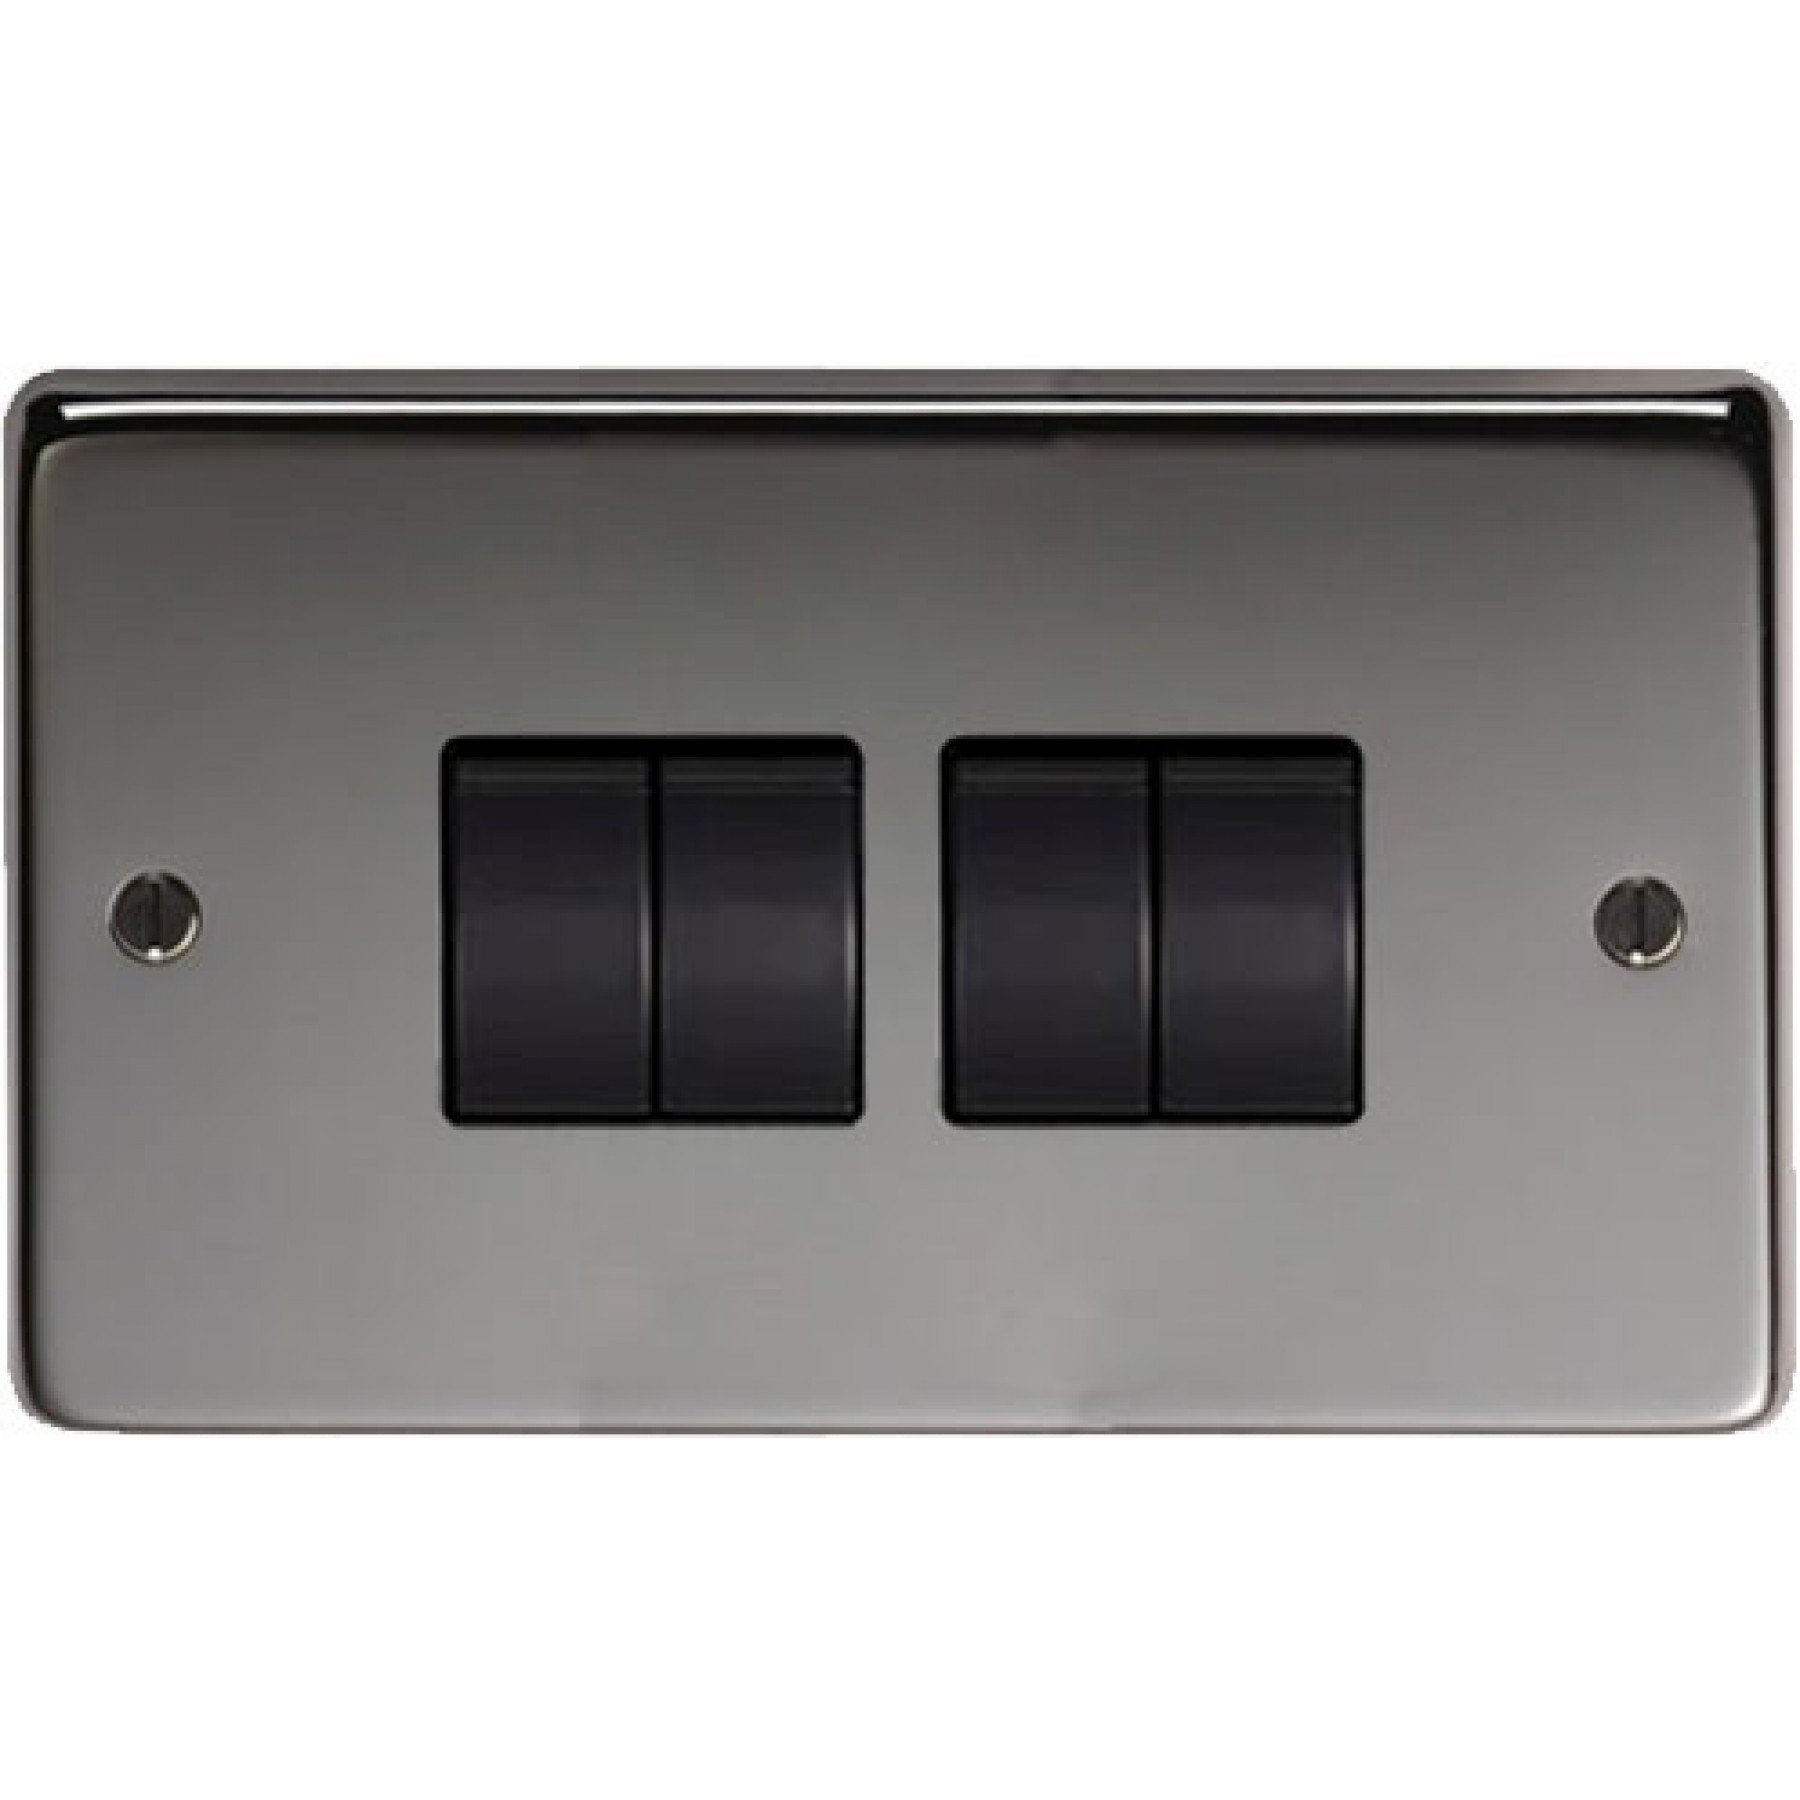 BN Quad 10 Amp Switch - No.42 Interiors